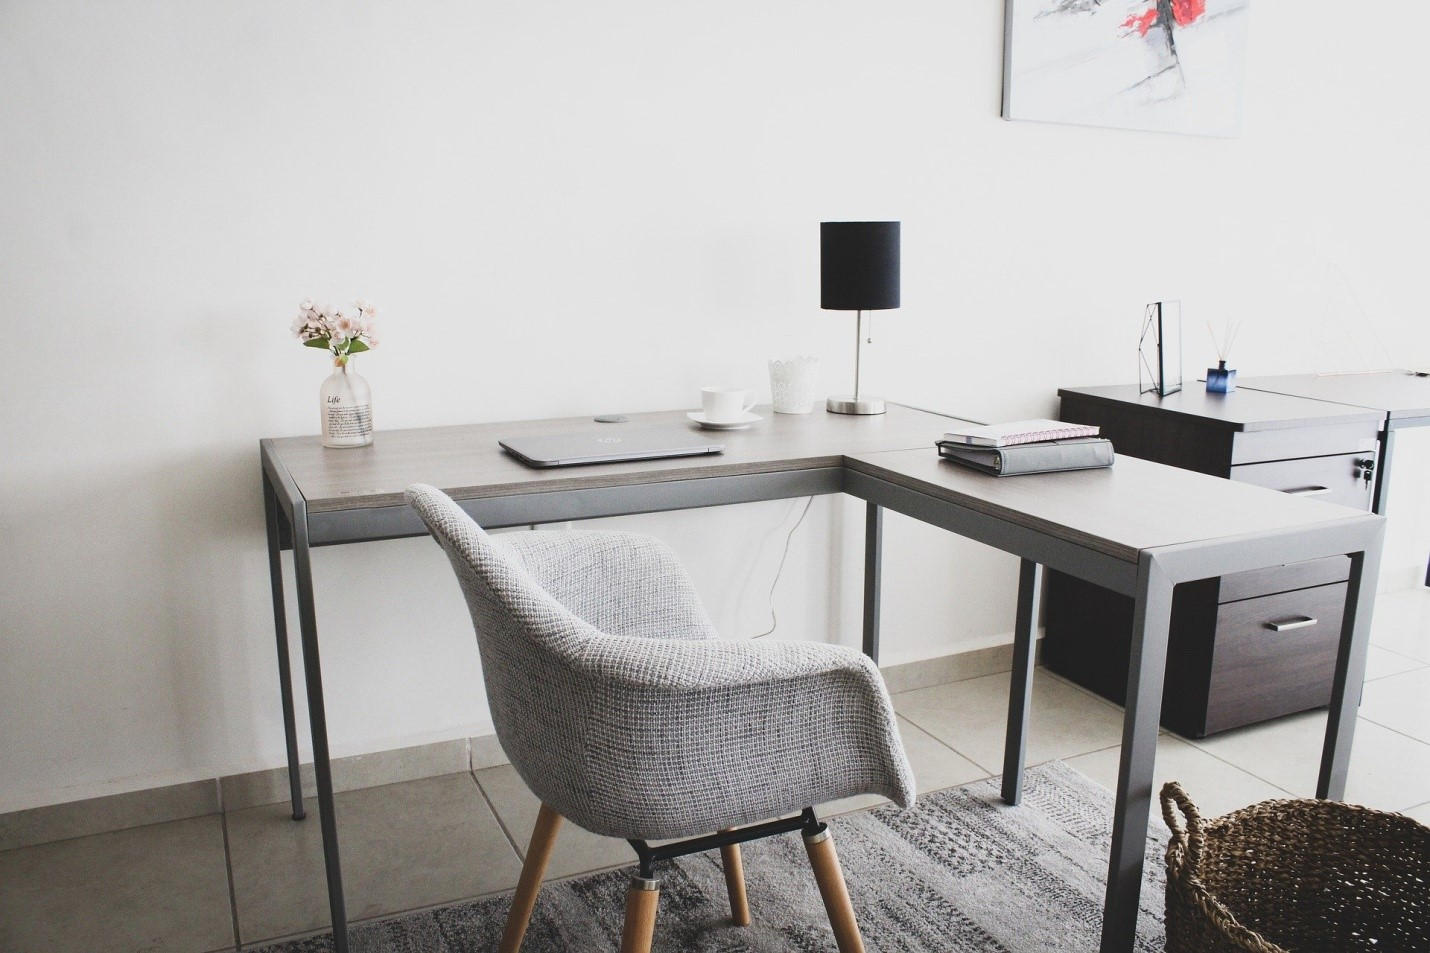 A workspace at home